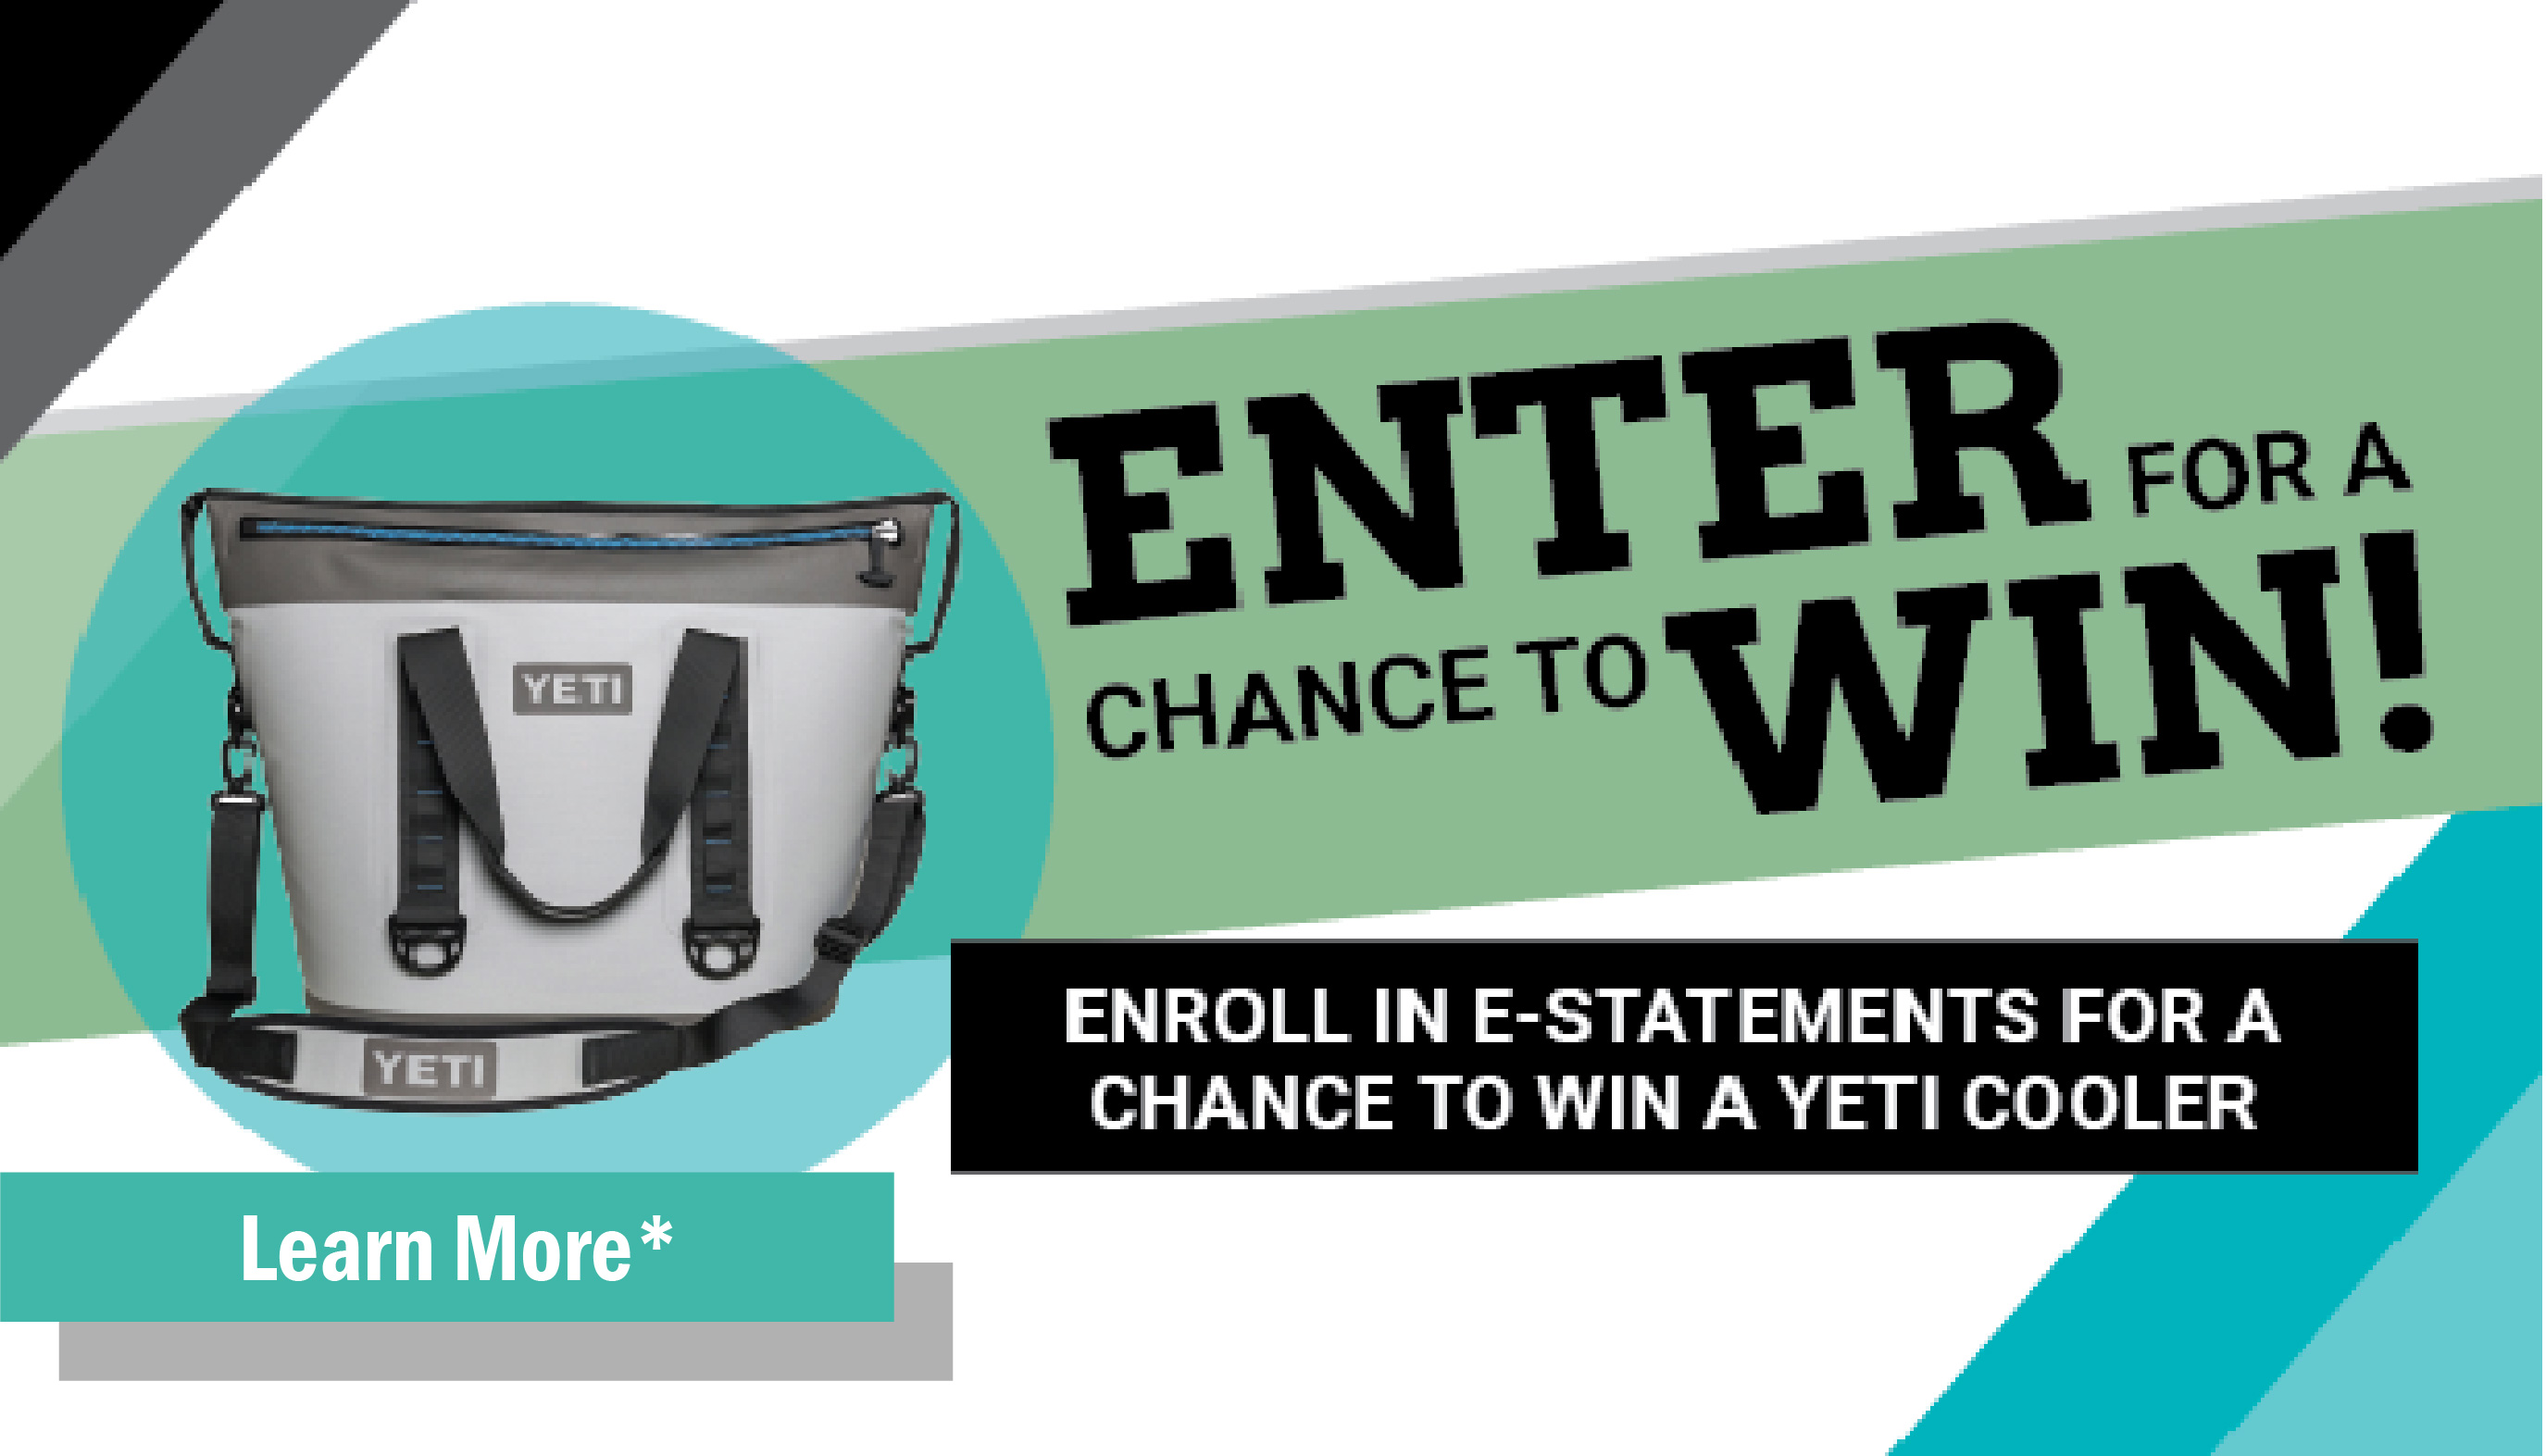 Enroll in eStatements for a chance to win a Yeti Cooler!